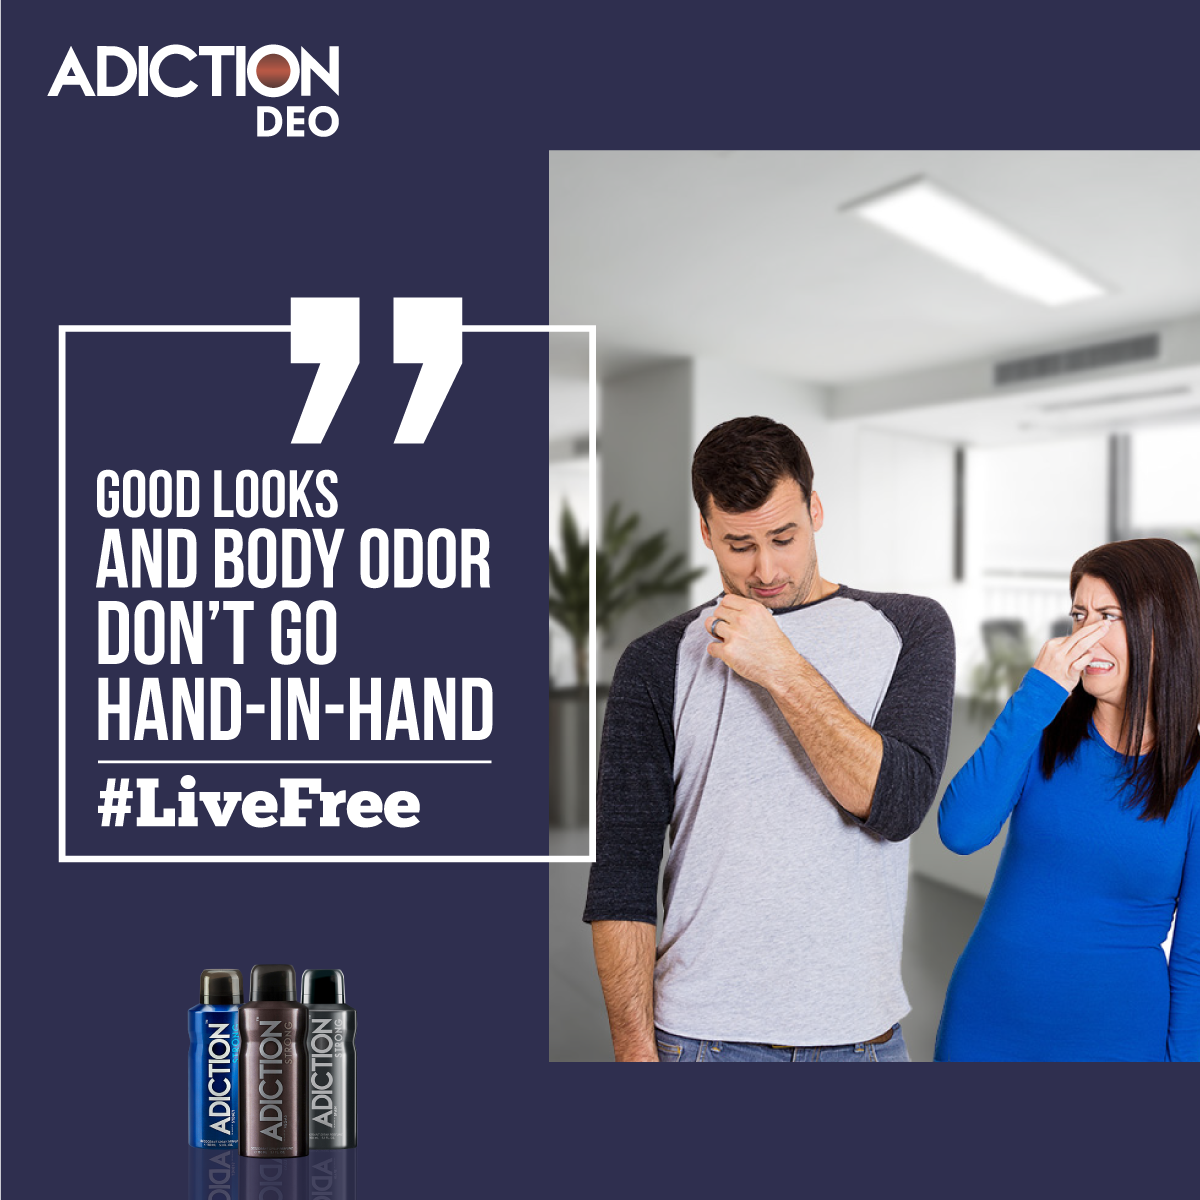 #Grooming is the first step to attract her. #Attraction #Adiction https://t.co/v2qQlJBANm